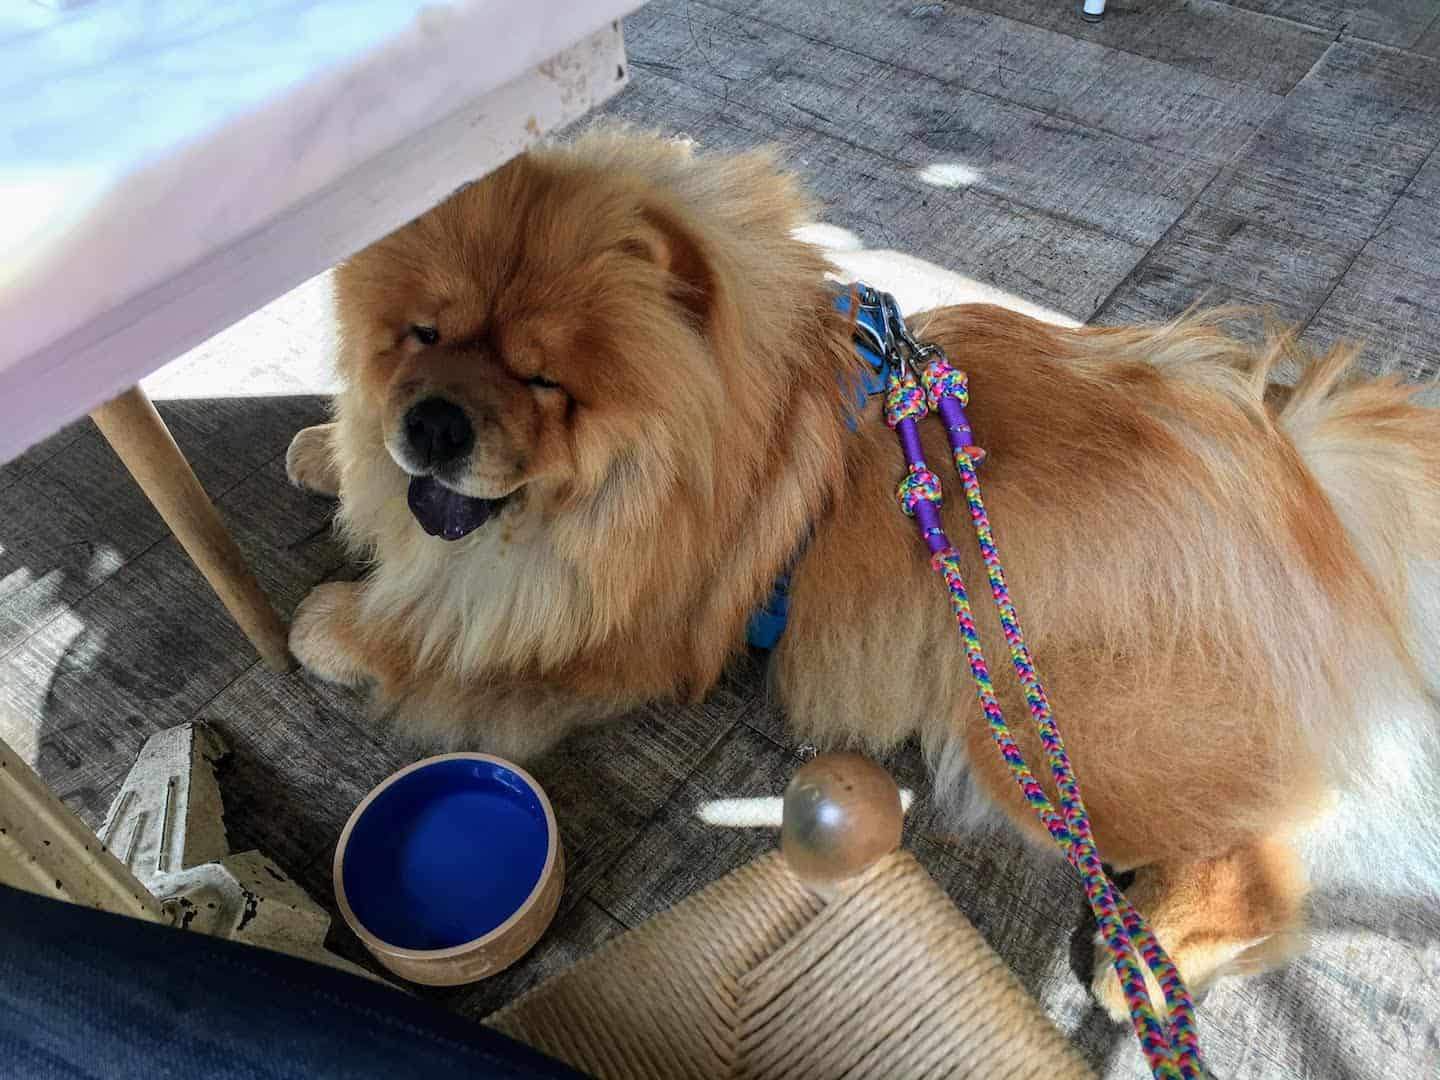 My Dog Friendly London Richmond Clover the Chow Chow 16